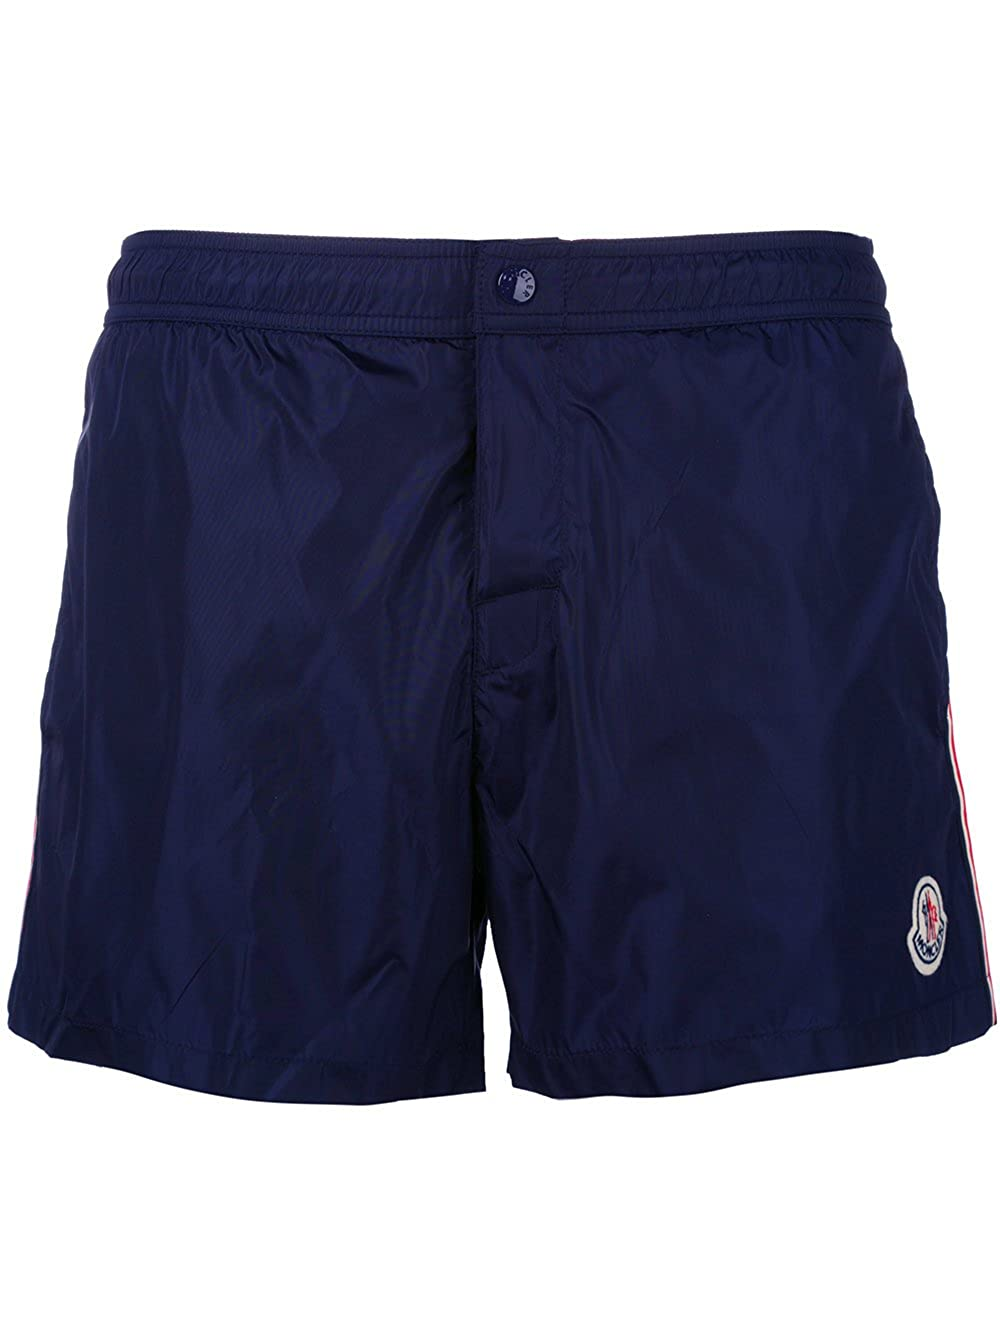 225d7deeb4 Moncler Men's Swimming Shorts Blue Blue - Blue - S: Amazon.co.uk: Clothing